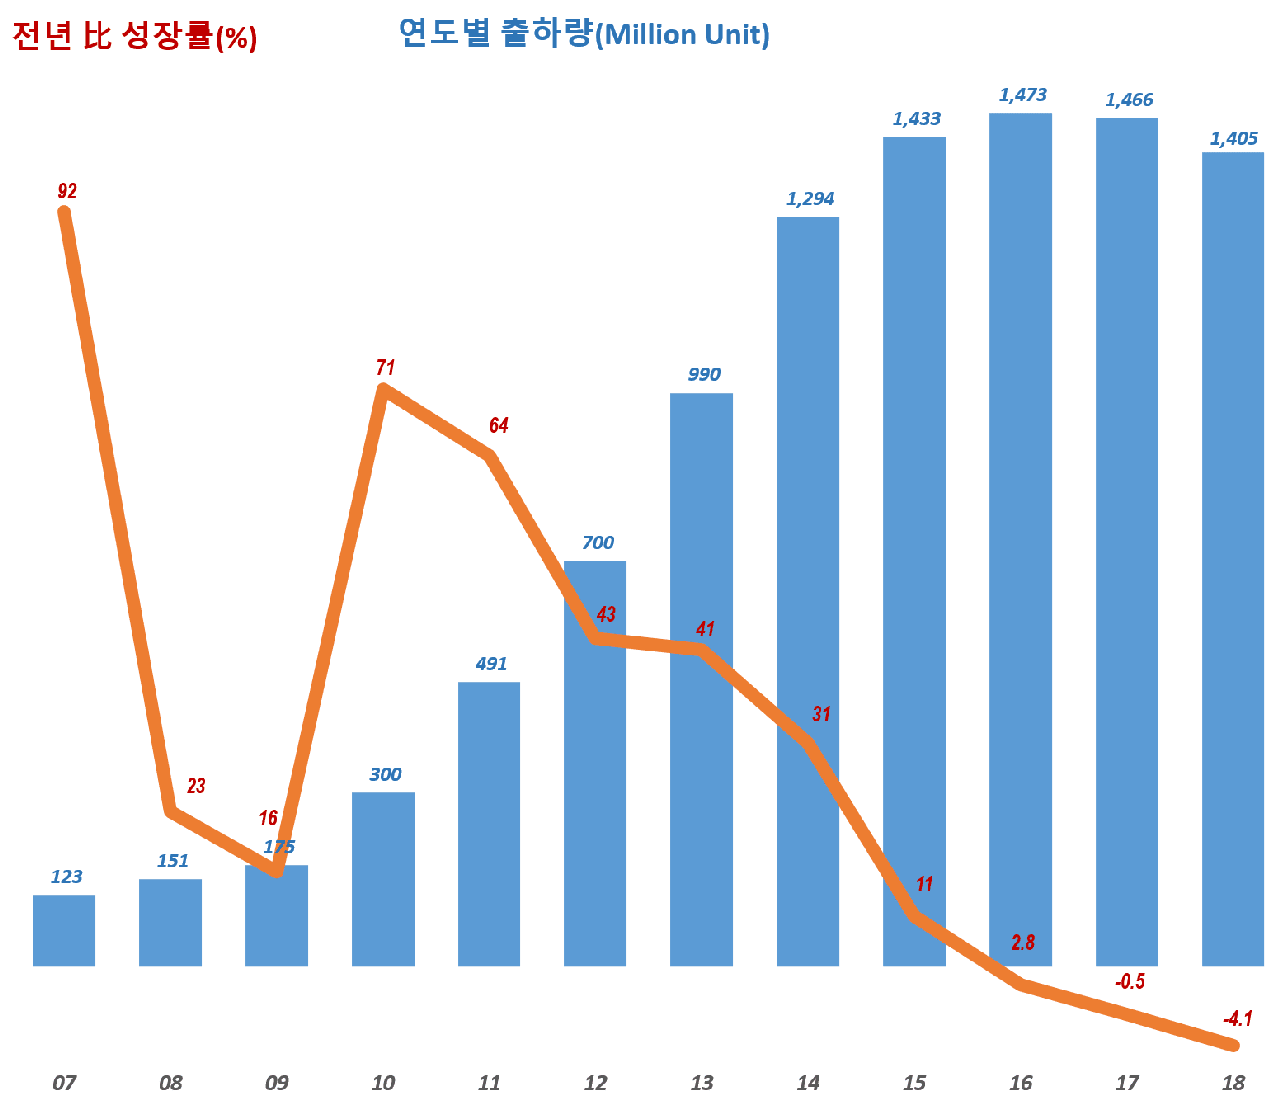 연도별 스마트폰 출하량 추이(2007년 ~ 2018년) Yearly SmartphoneShipment trend, Data Source - IDC, Graph by Happist